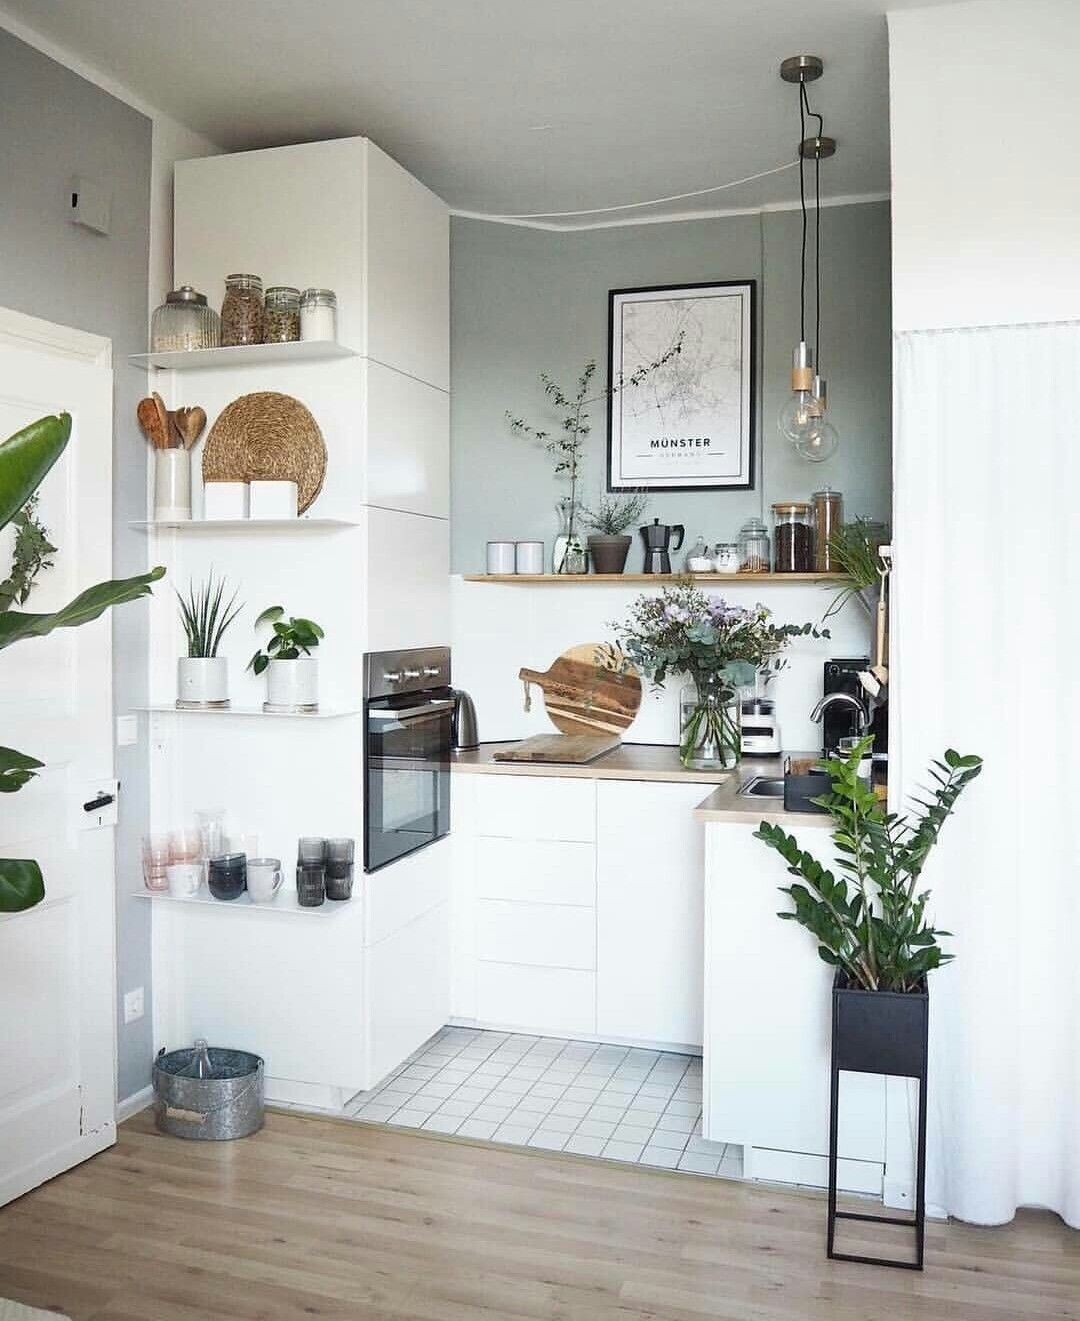 Pin by Marie THERESE on Deco cuina  Kitchen design small, Kitchen